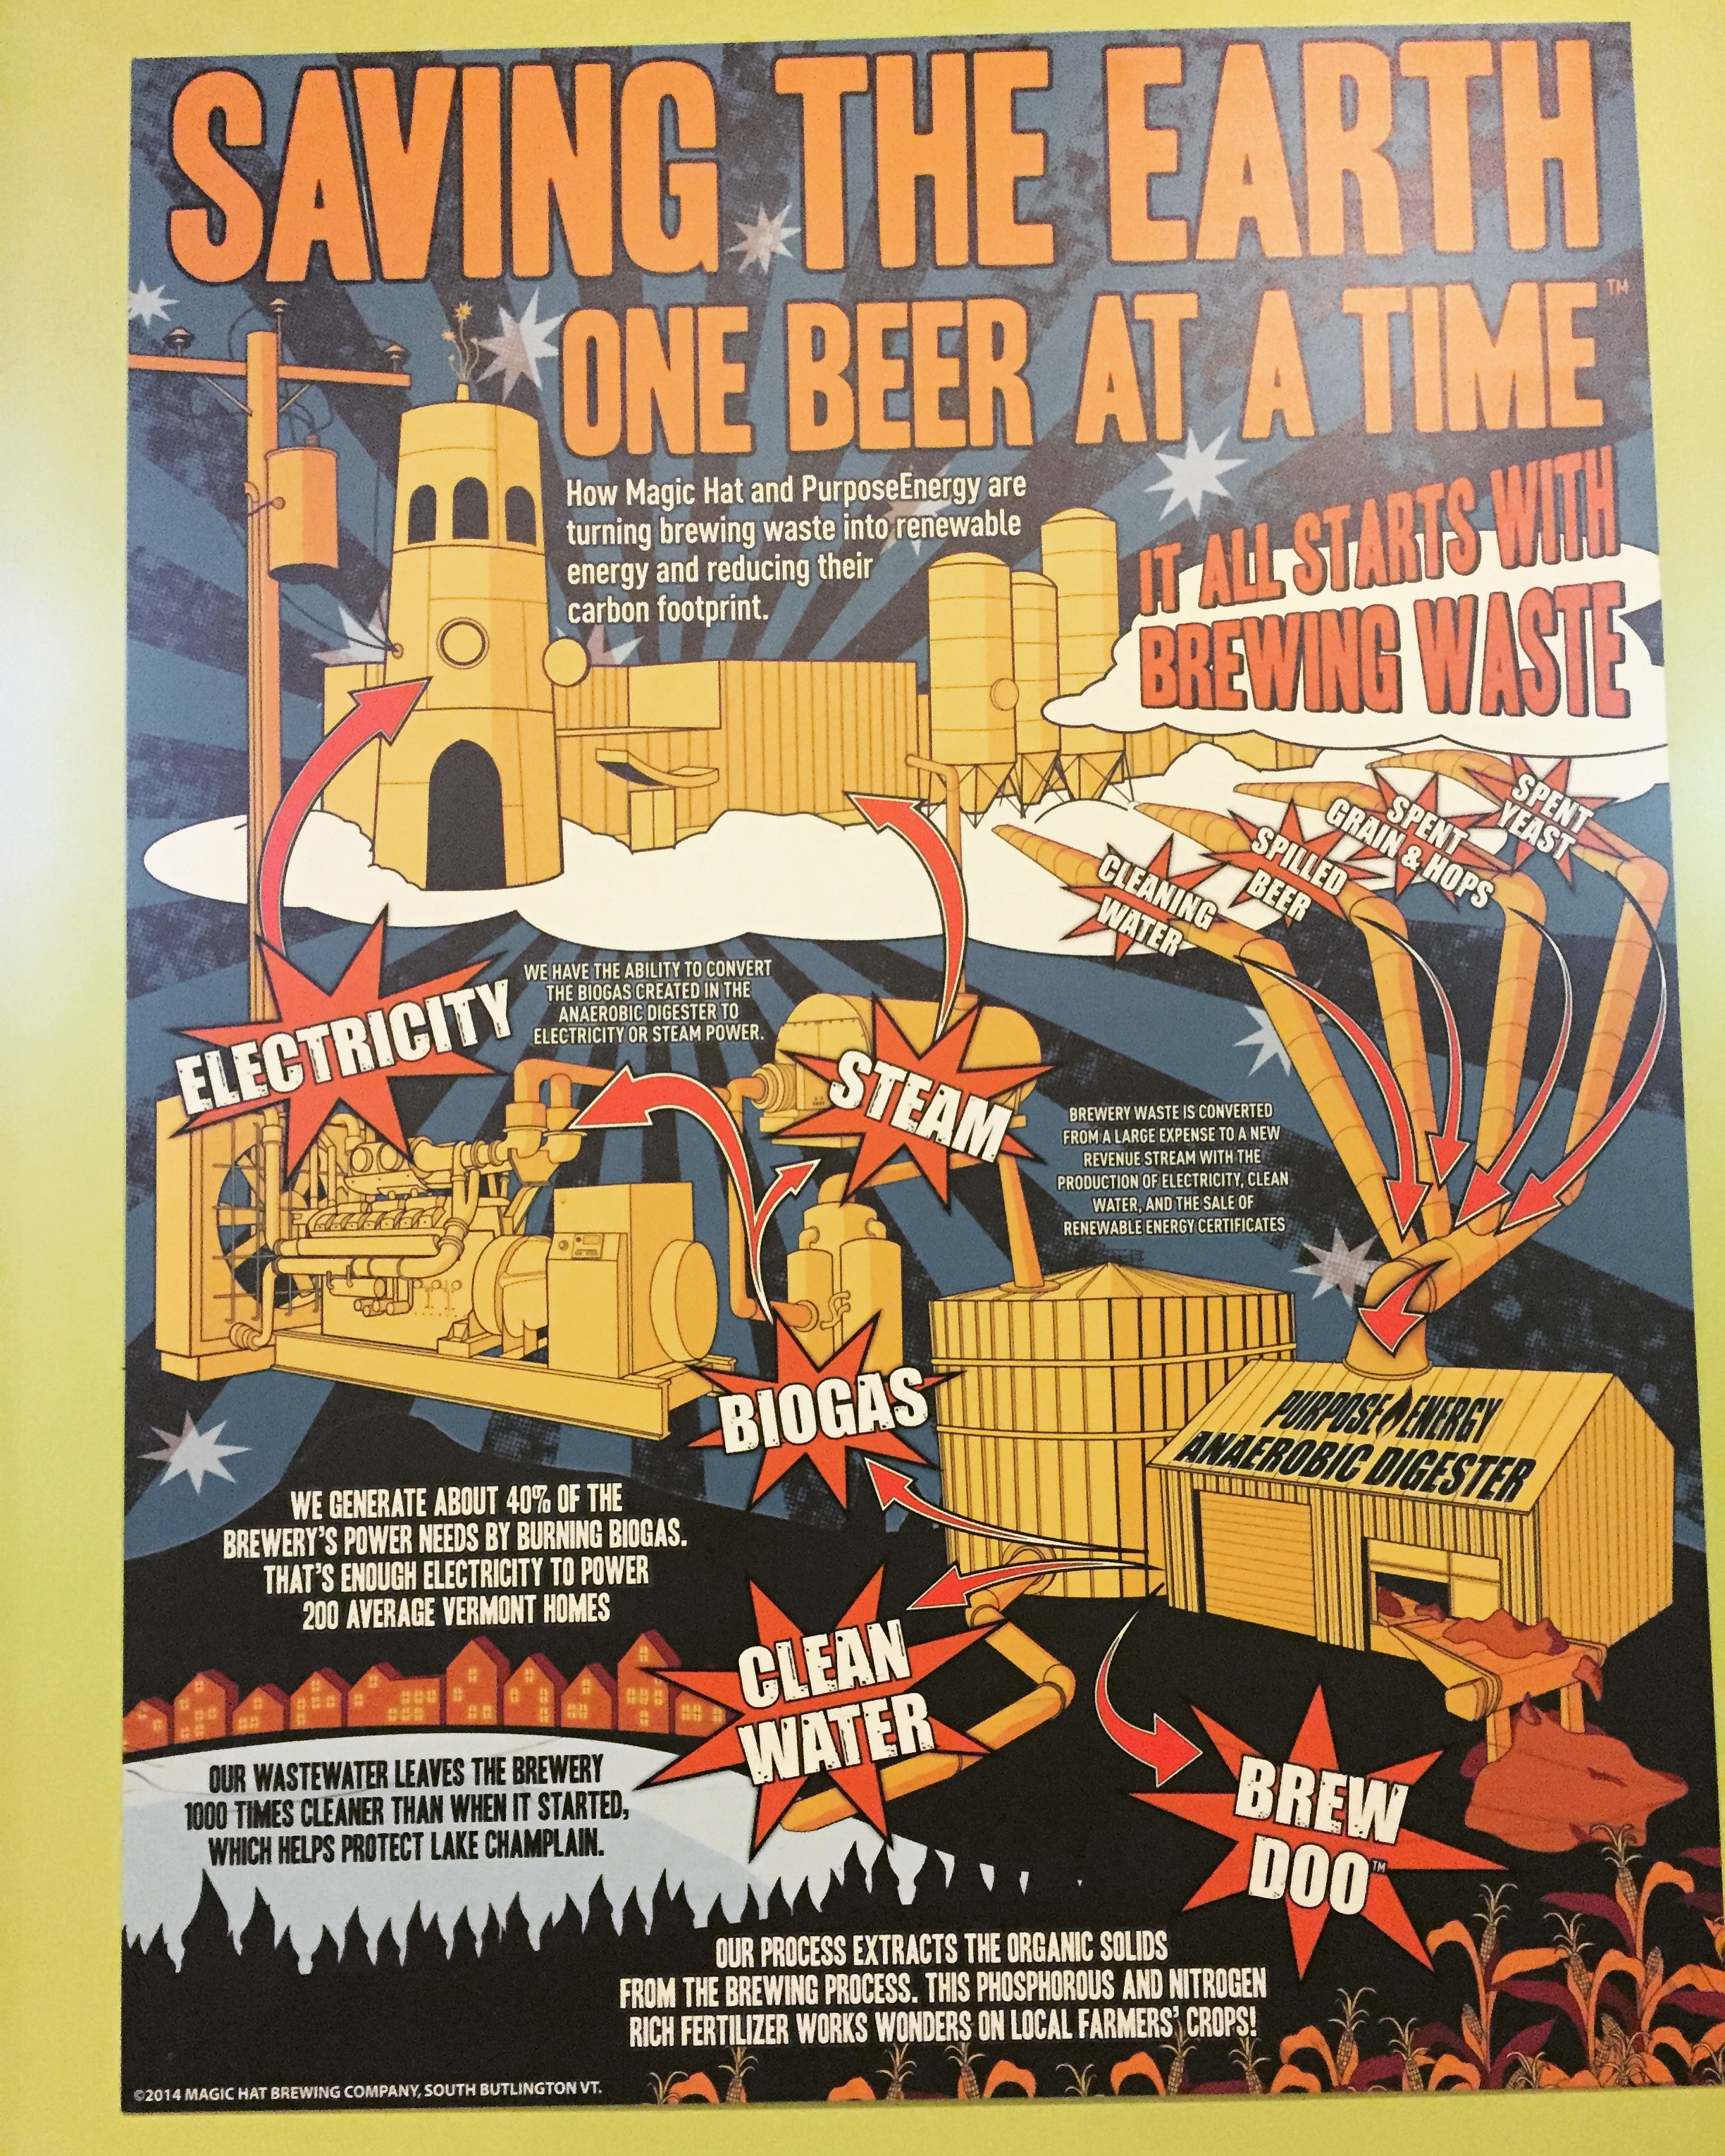 What? A beer company that is reducing their own carbon footprint. Totally awesome!